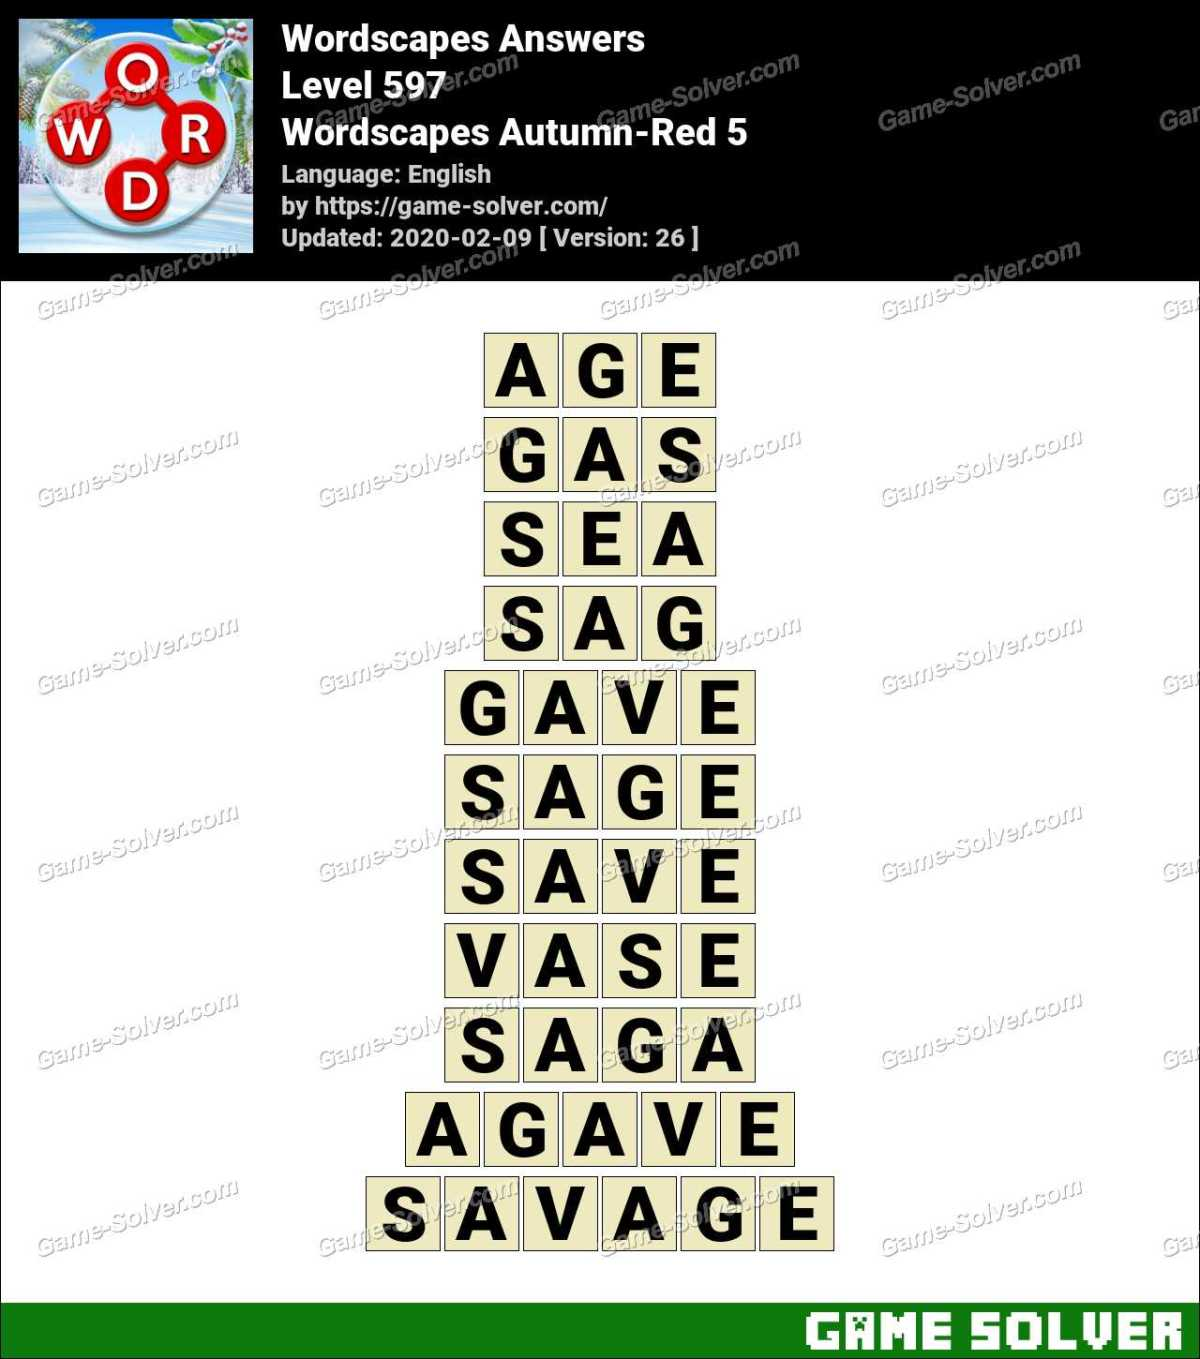 Wordscapes Autumn-Red 5 Answers